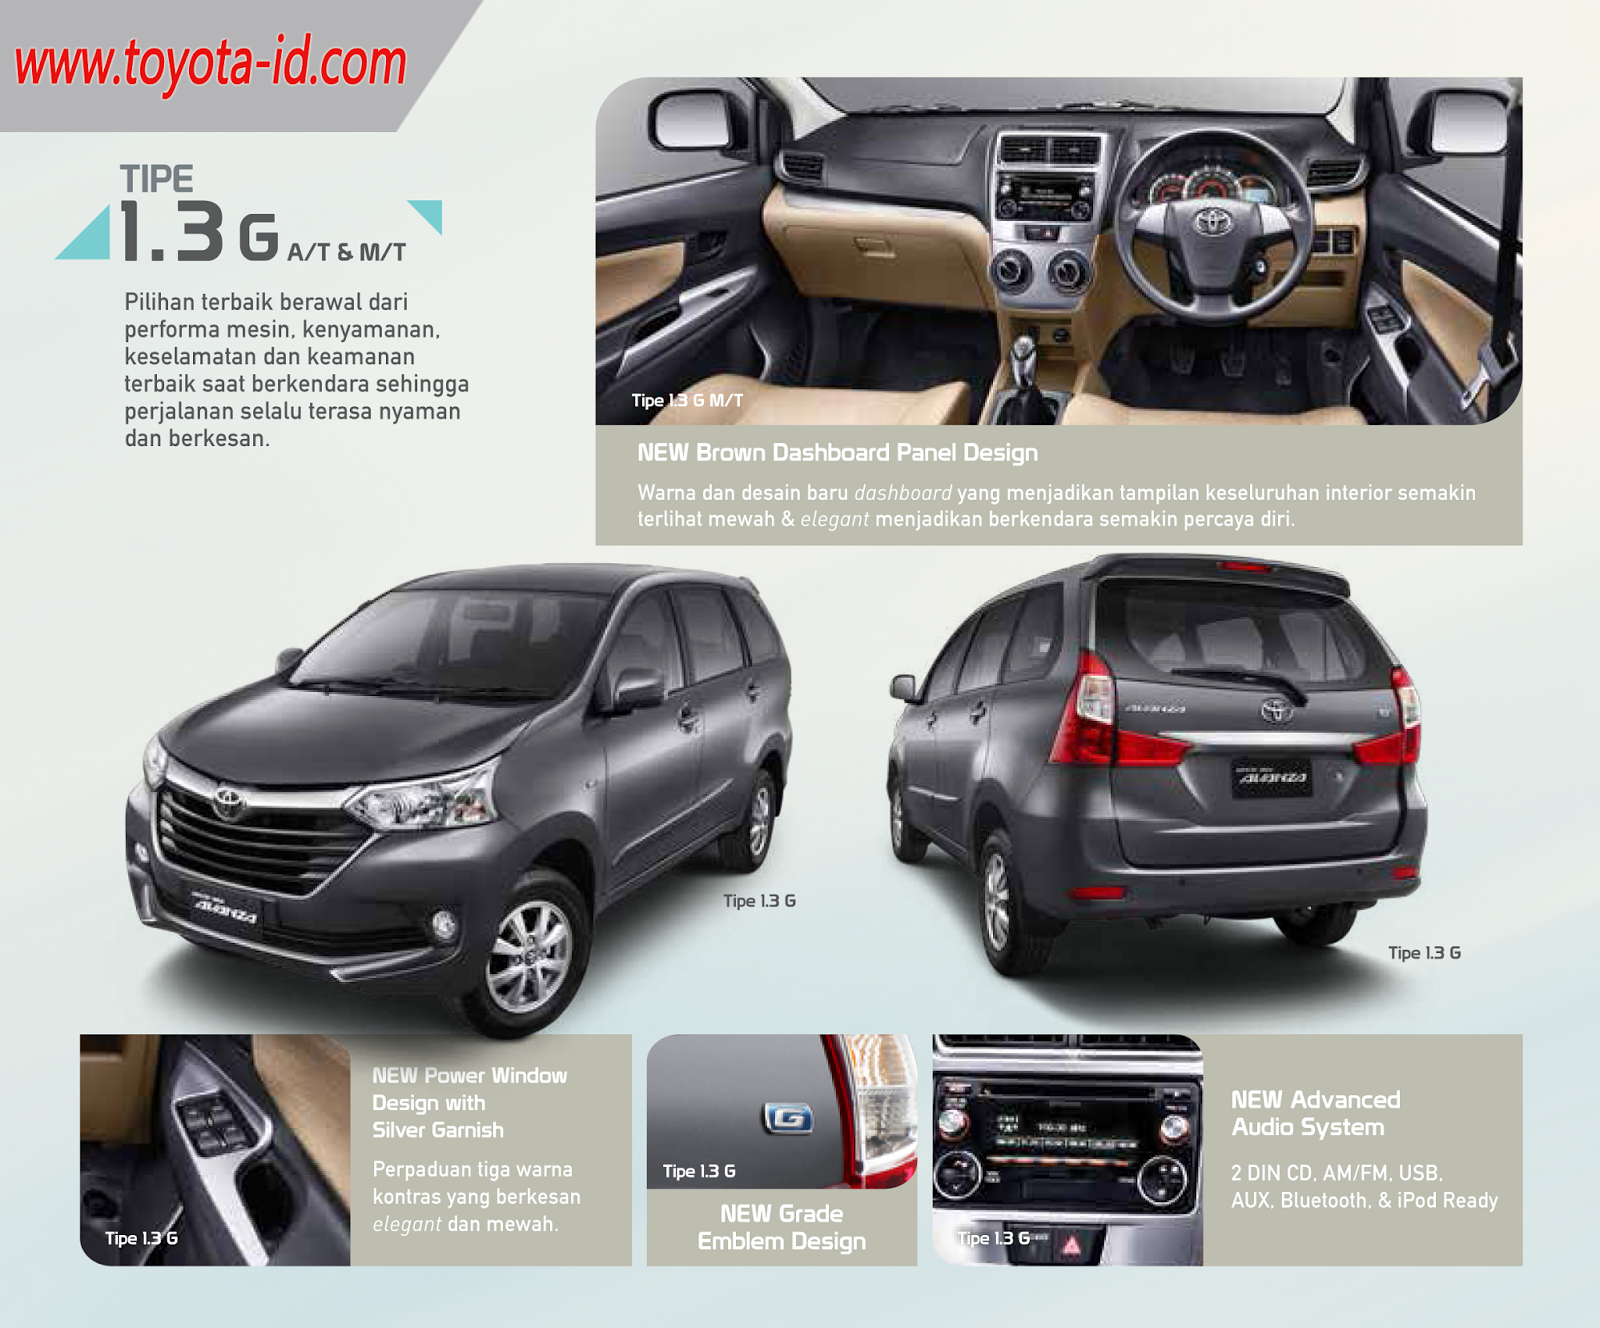 varian warna grand new avanza accessories spesifikasi toyota 2015 astra